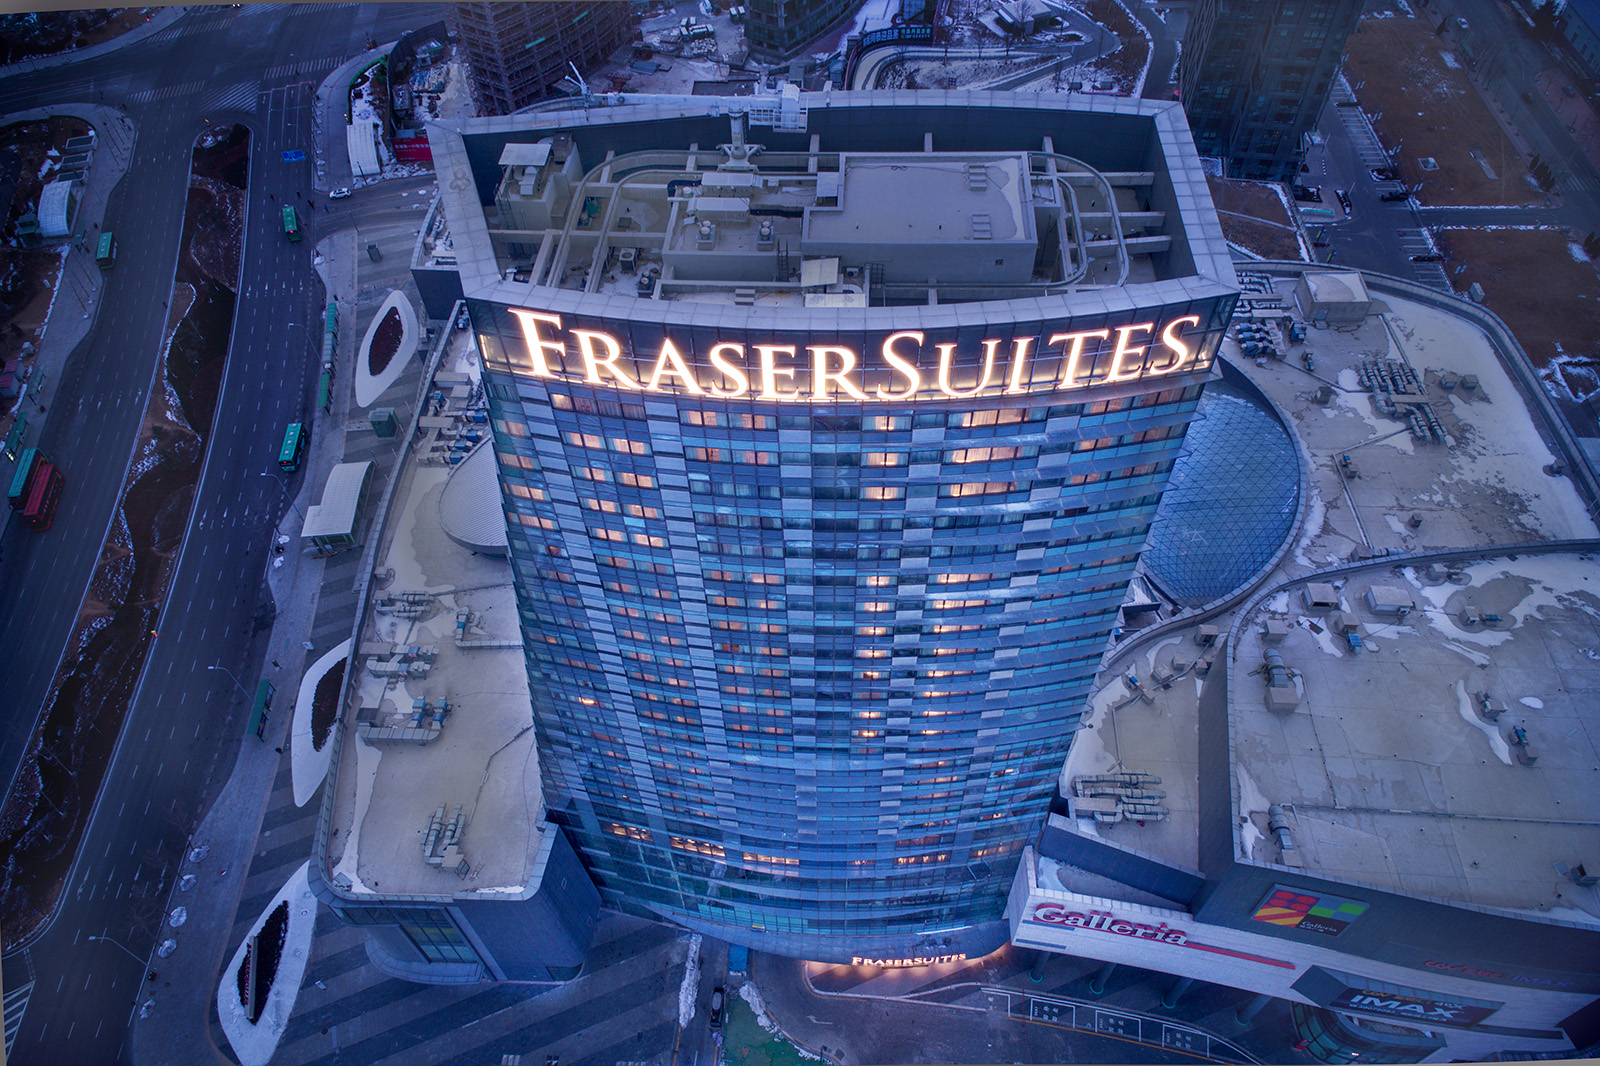 Interior, exterior, and aerial drone architectural photography of the Fraser Suites in Dalian, China. Paul Dingman is an architectural photographer based in Asia and China and specializing in the photography of hotels and resorts.